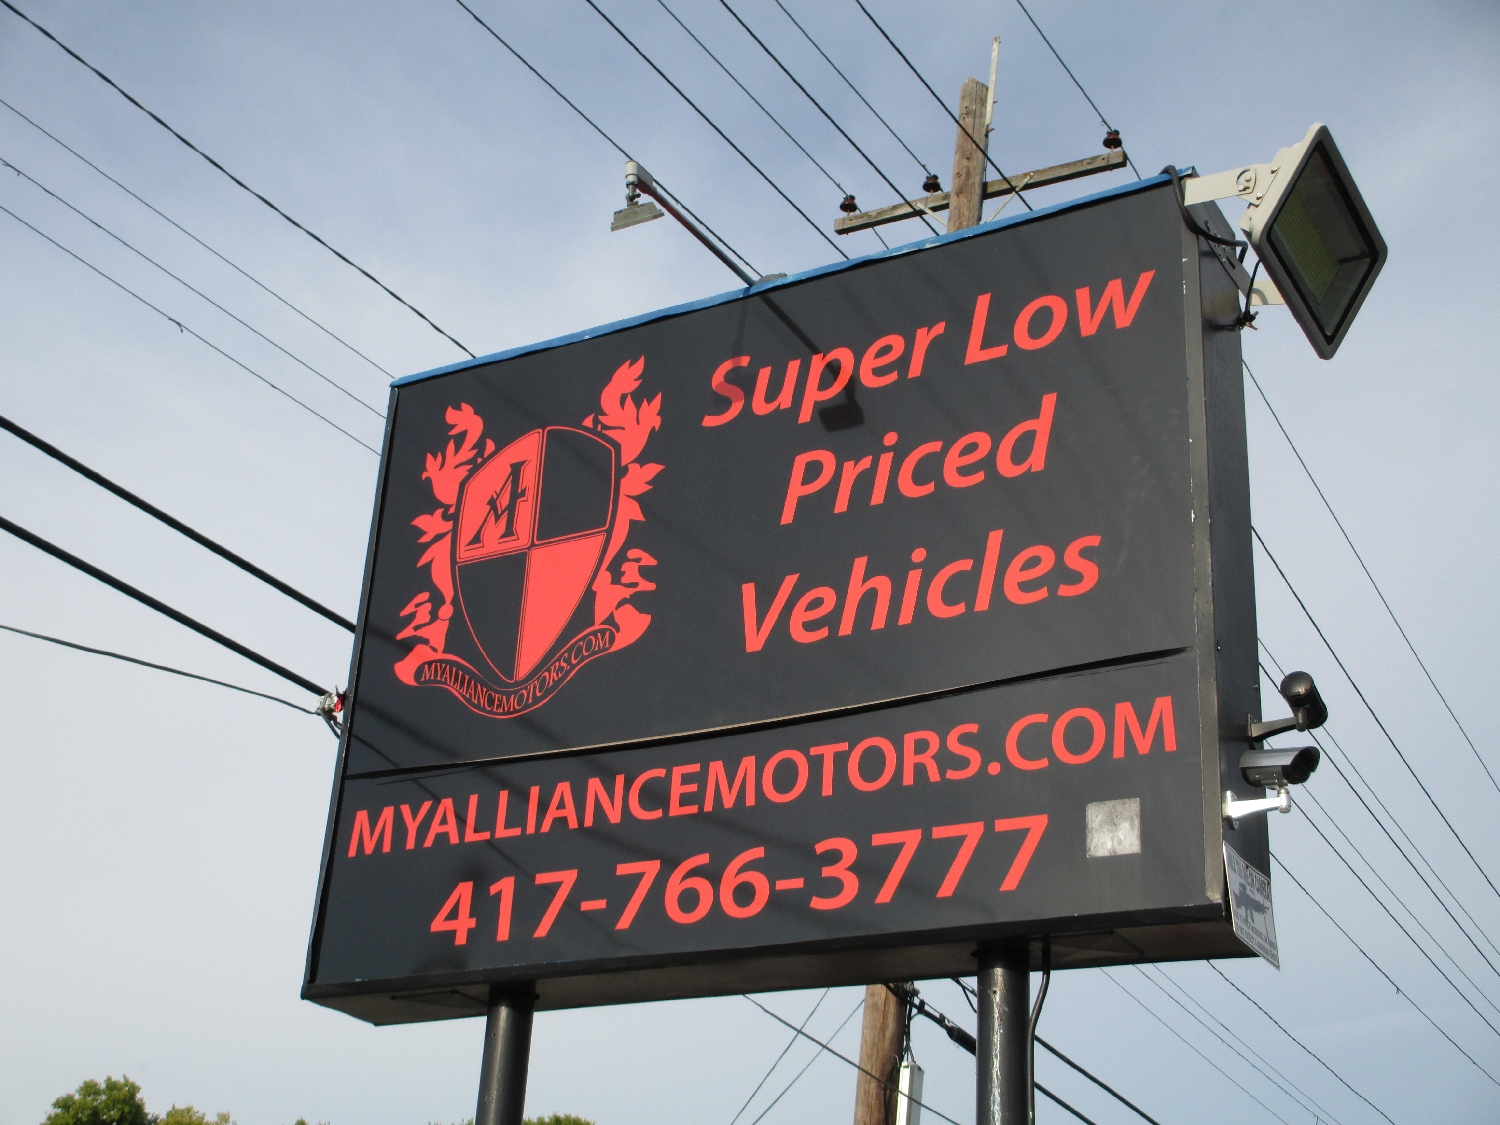 Alliance Motors - myalliancemotors.com, Springfield MO